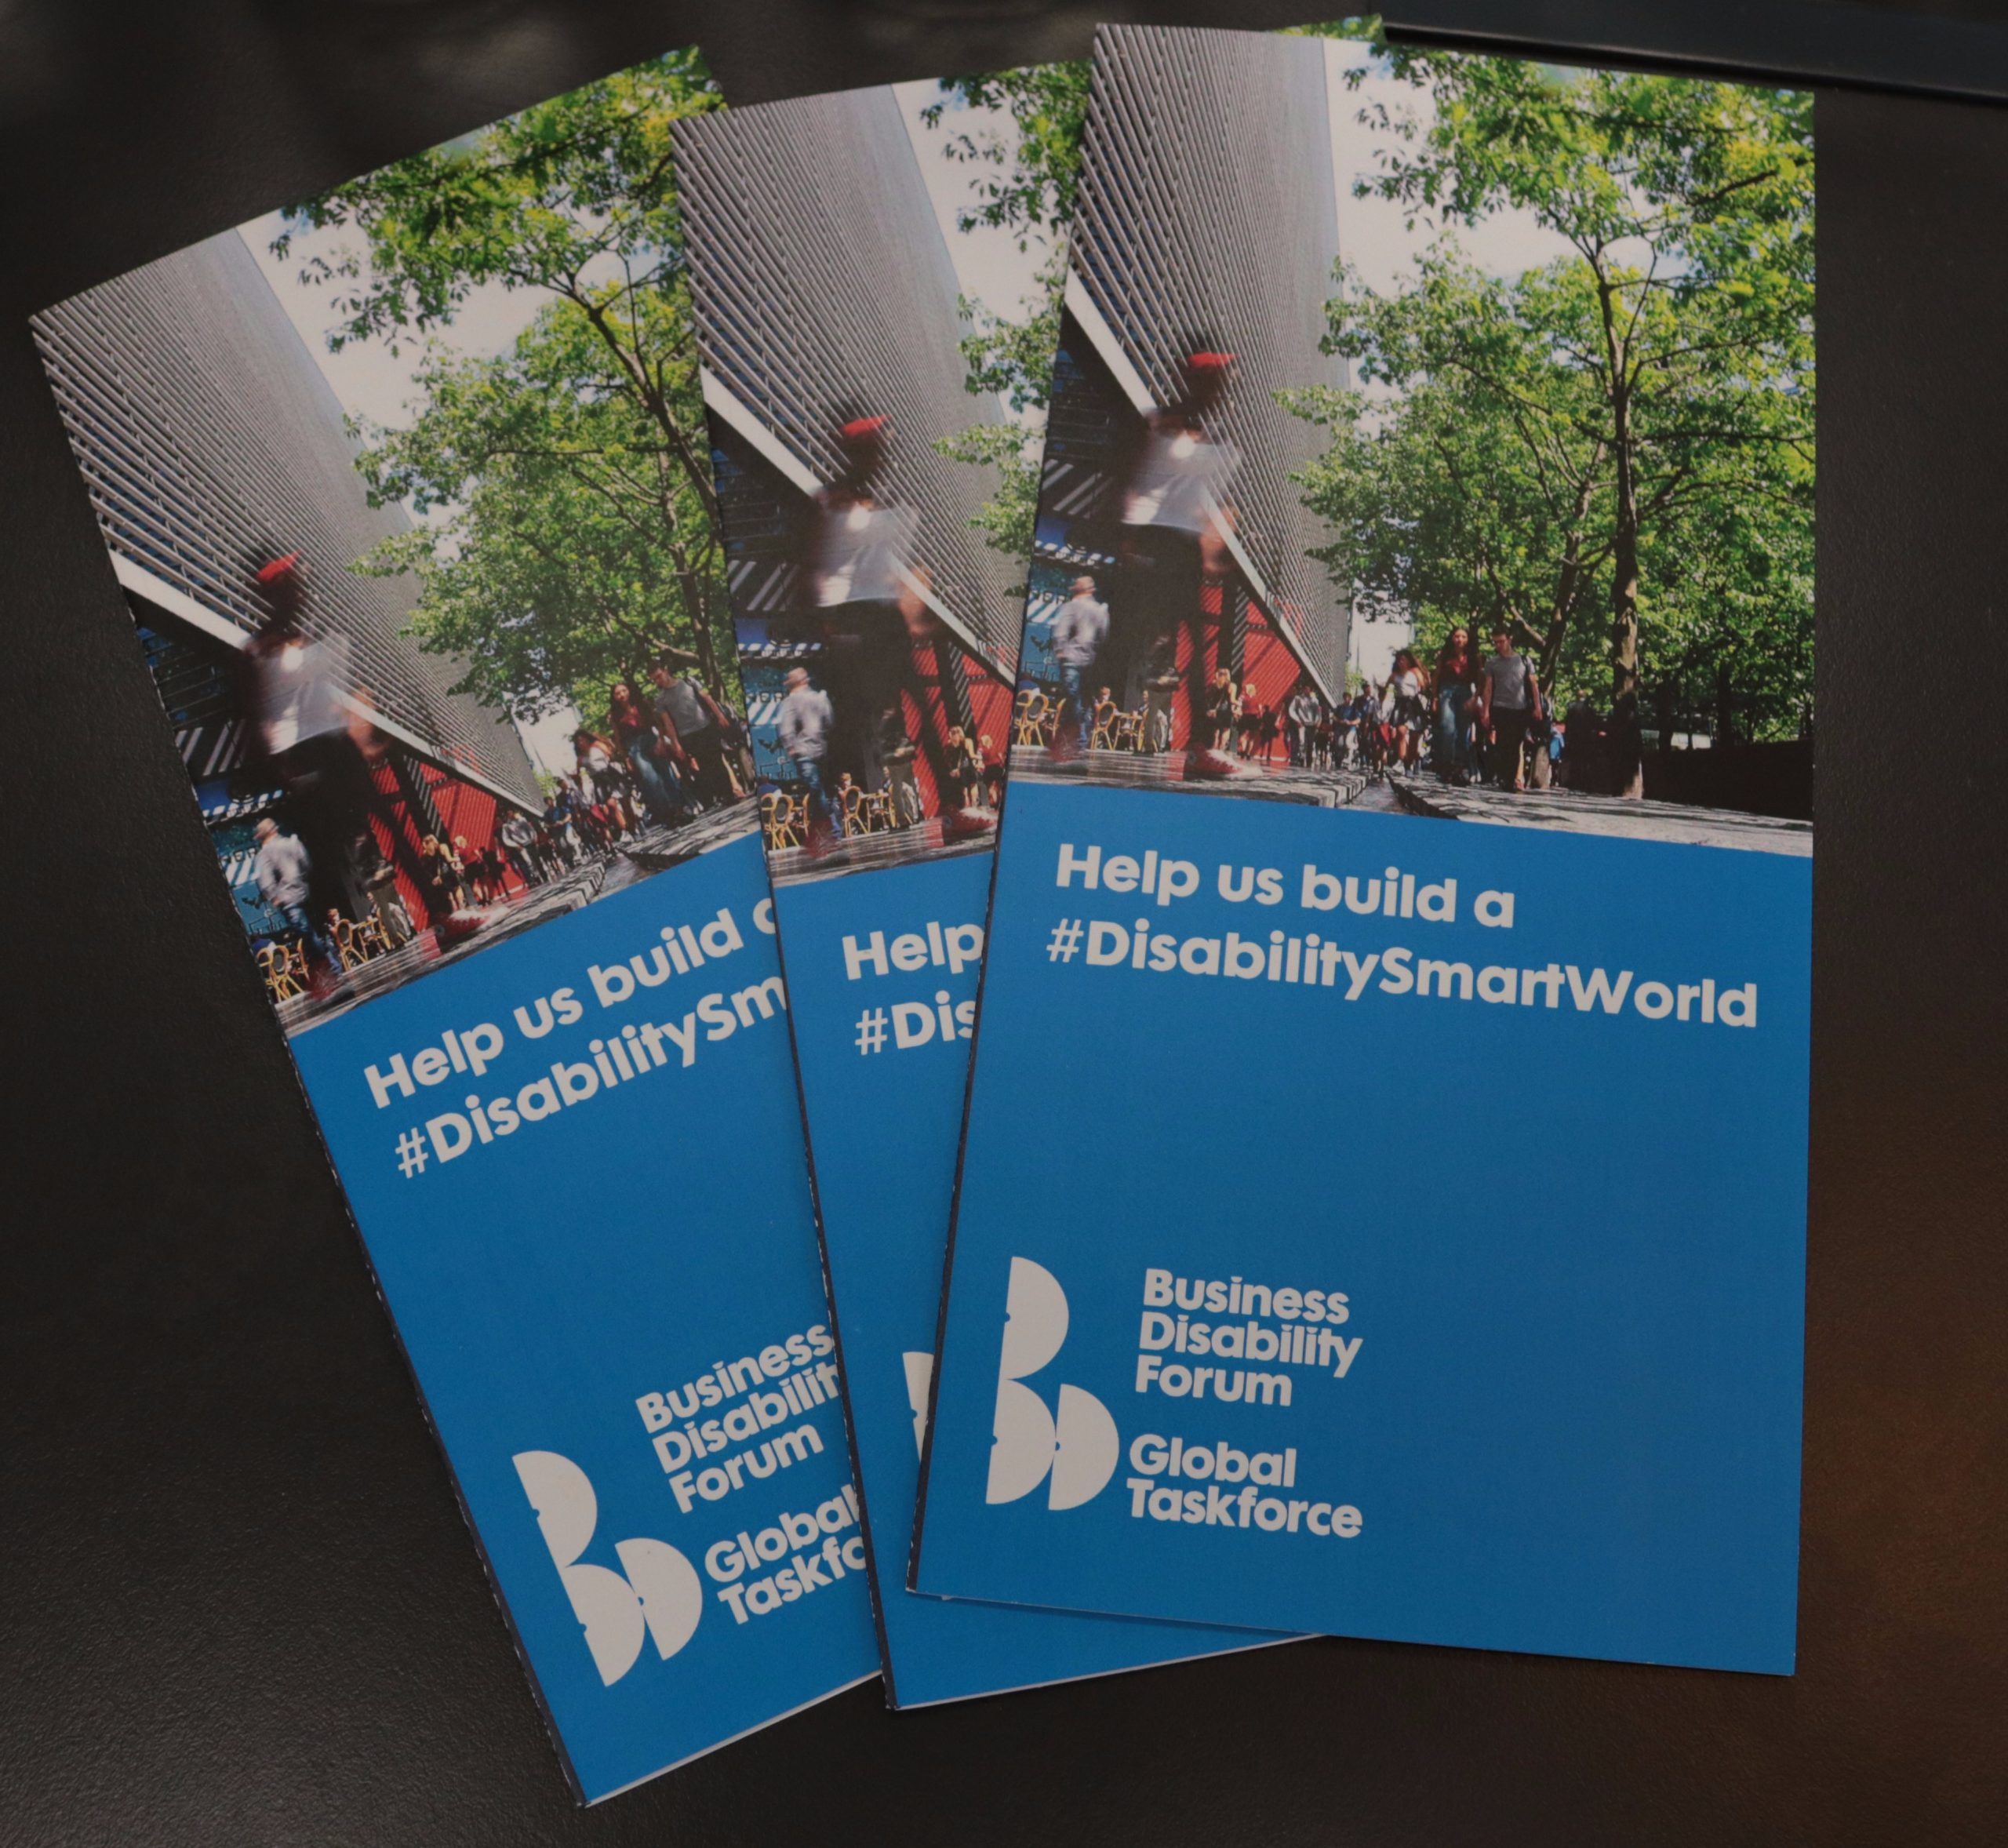 A series of Business Disability Forum Global Taskforce flyers on a table